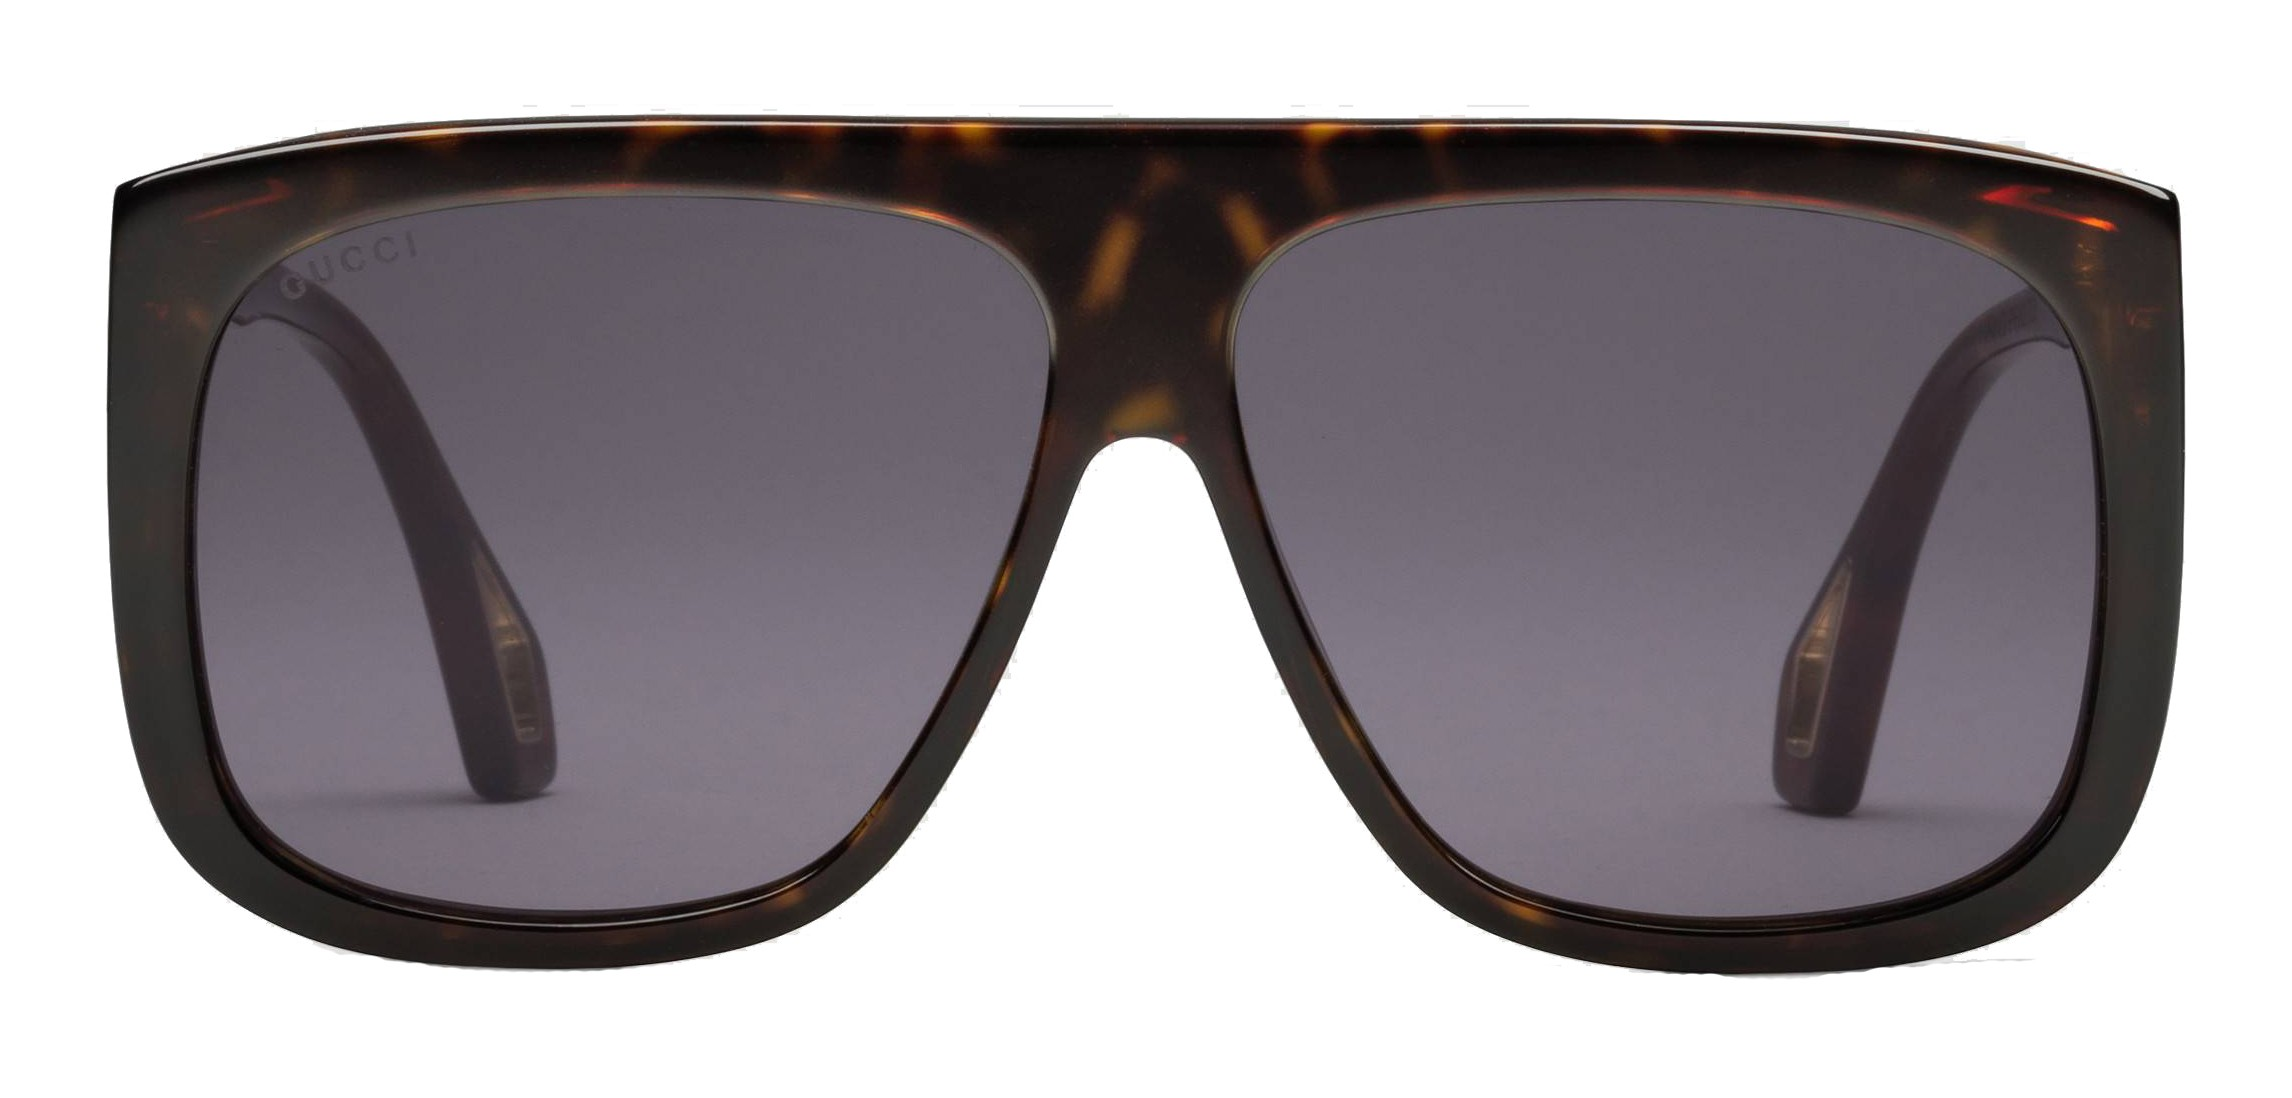 e1993f34 Gucci - Square Sunglasses with Side Protections - Shiny Turtle Amber -  Gucci Eyewear - Avvenice